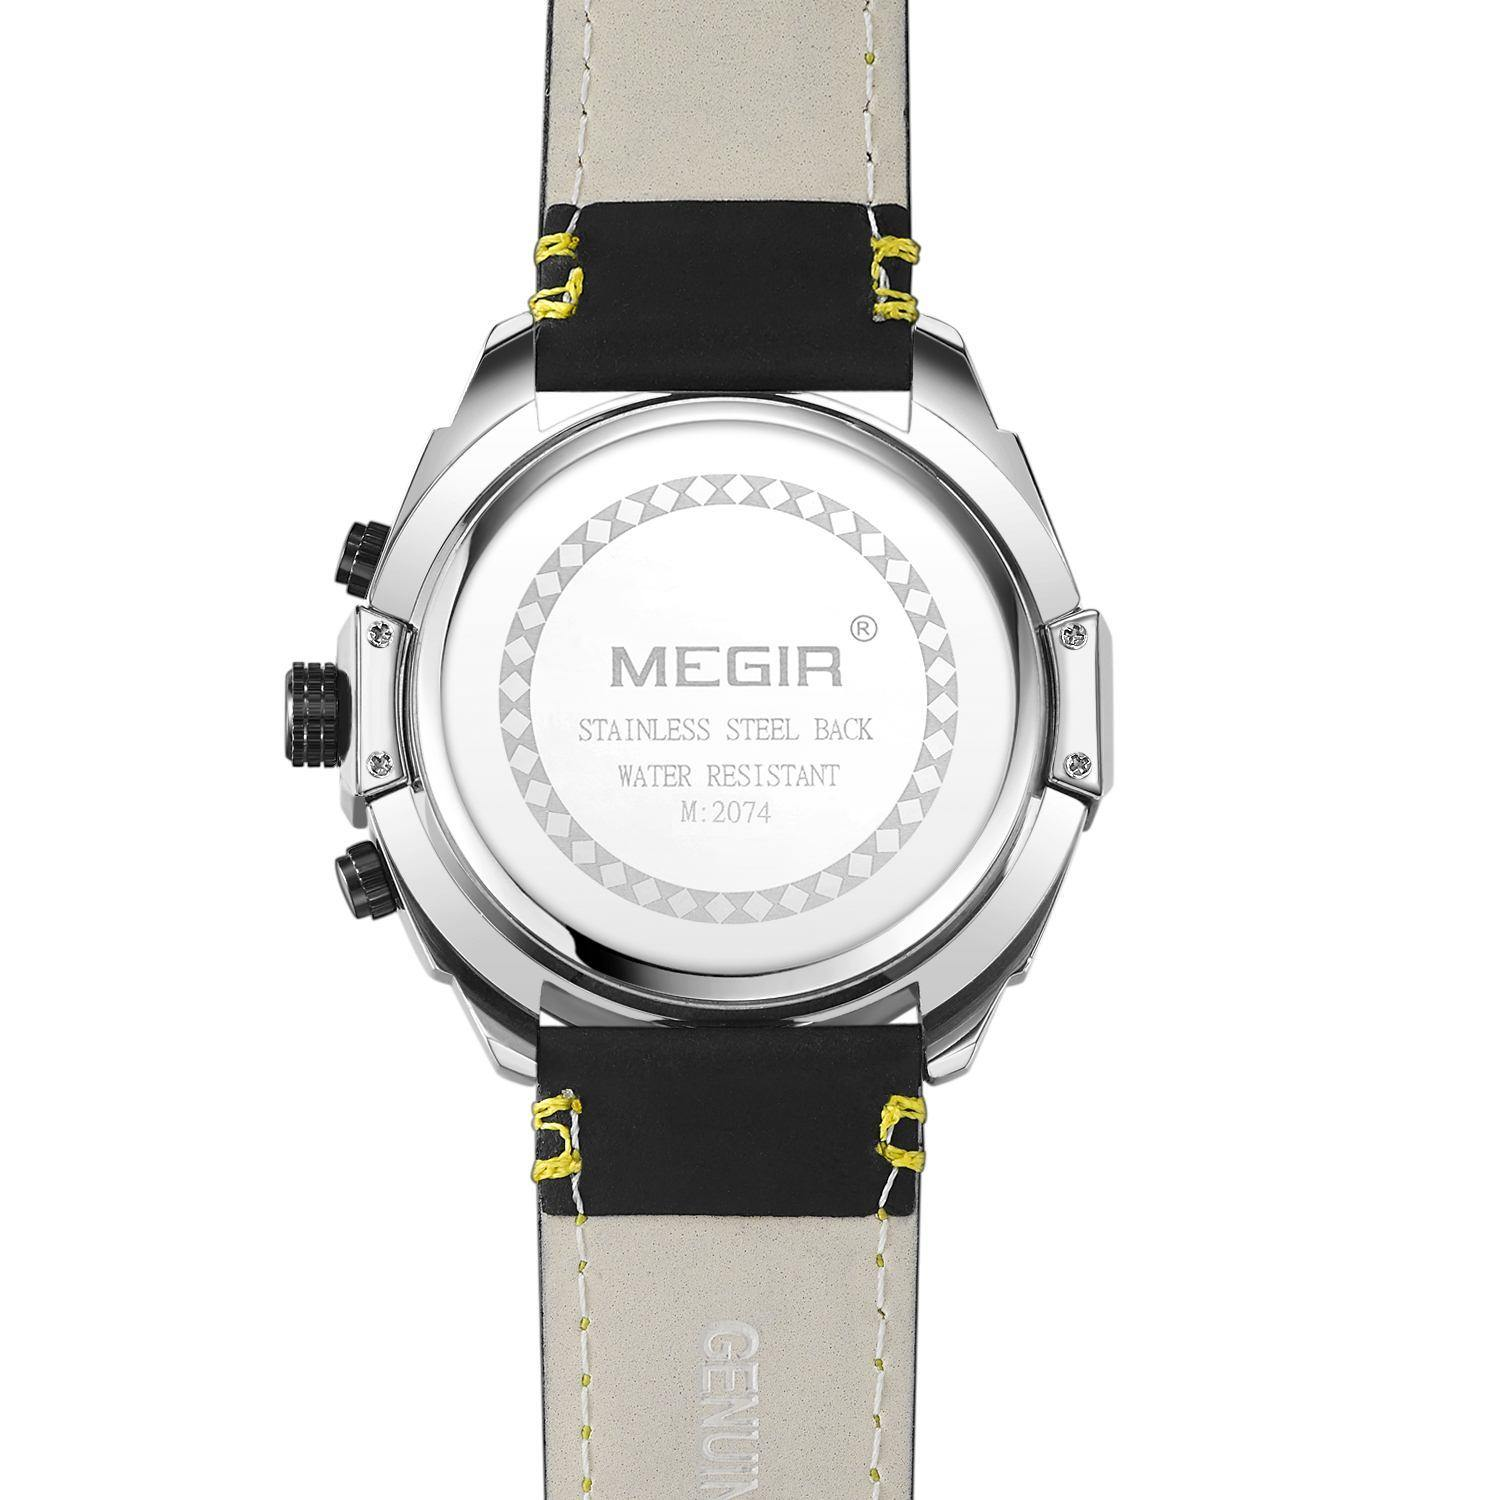 MEGIR chronograph watch for men 2074 - MEGIR